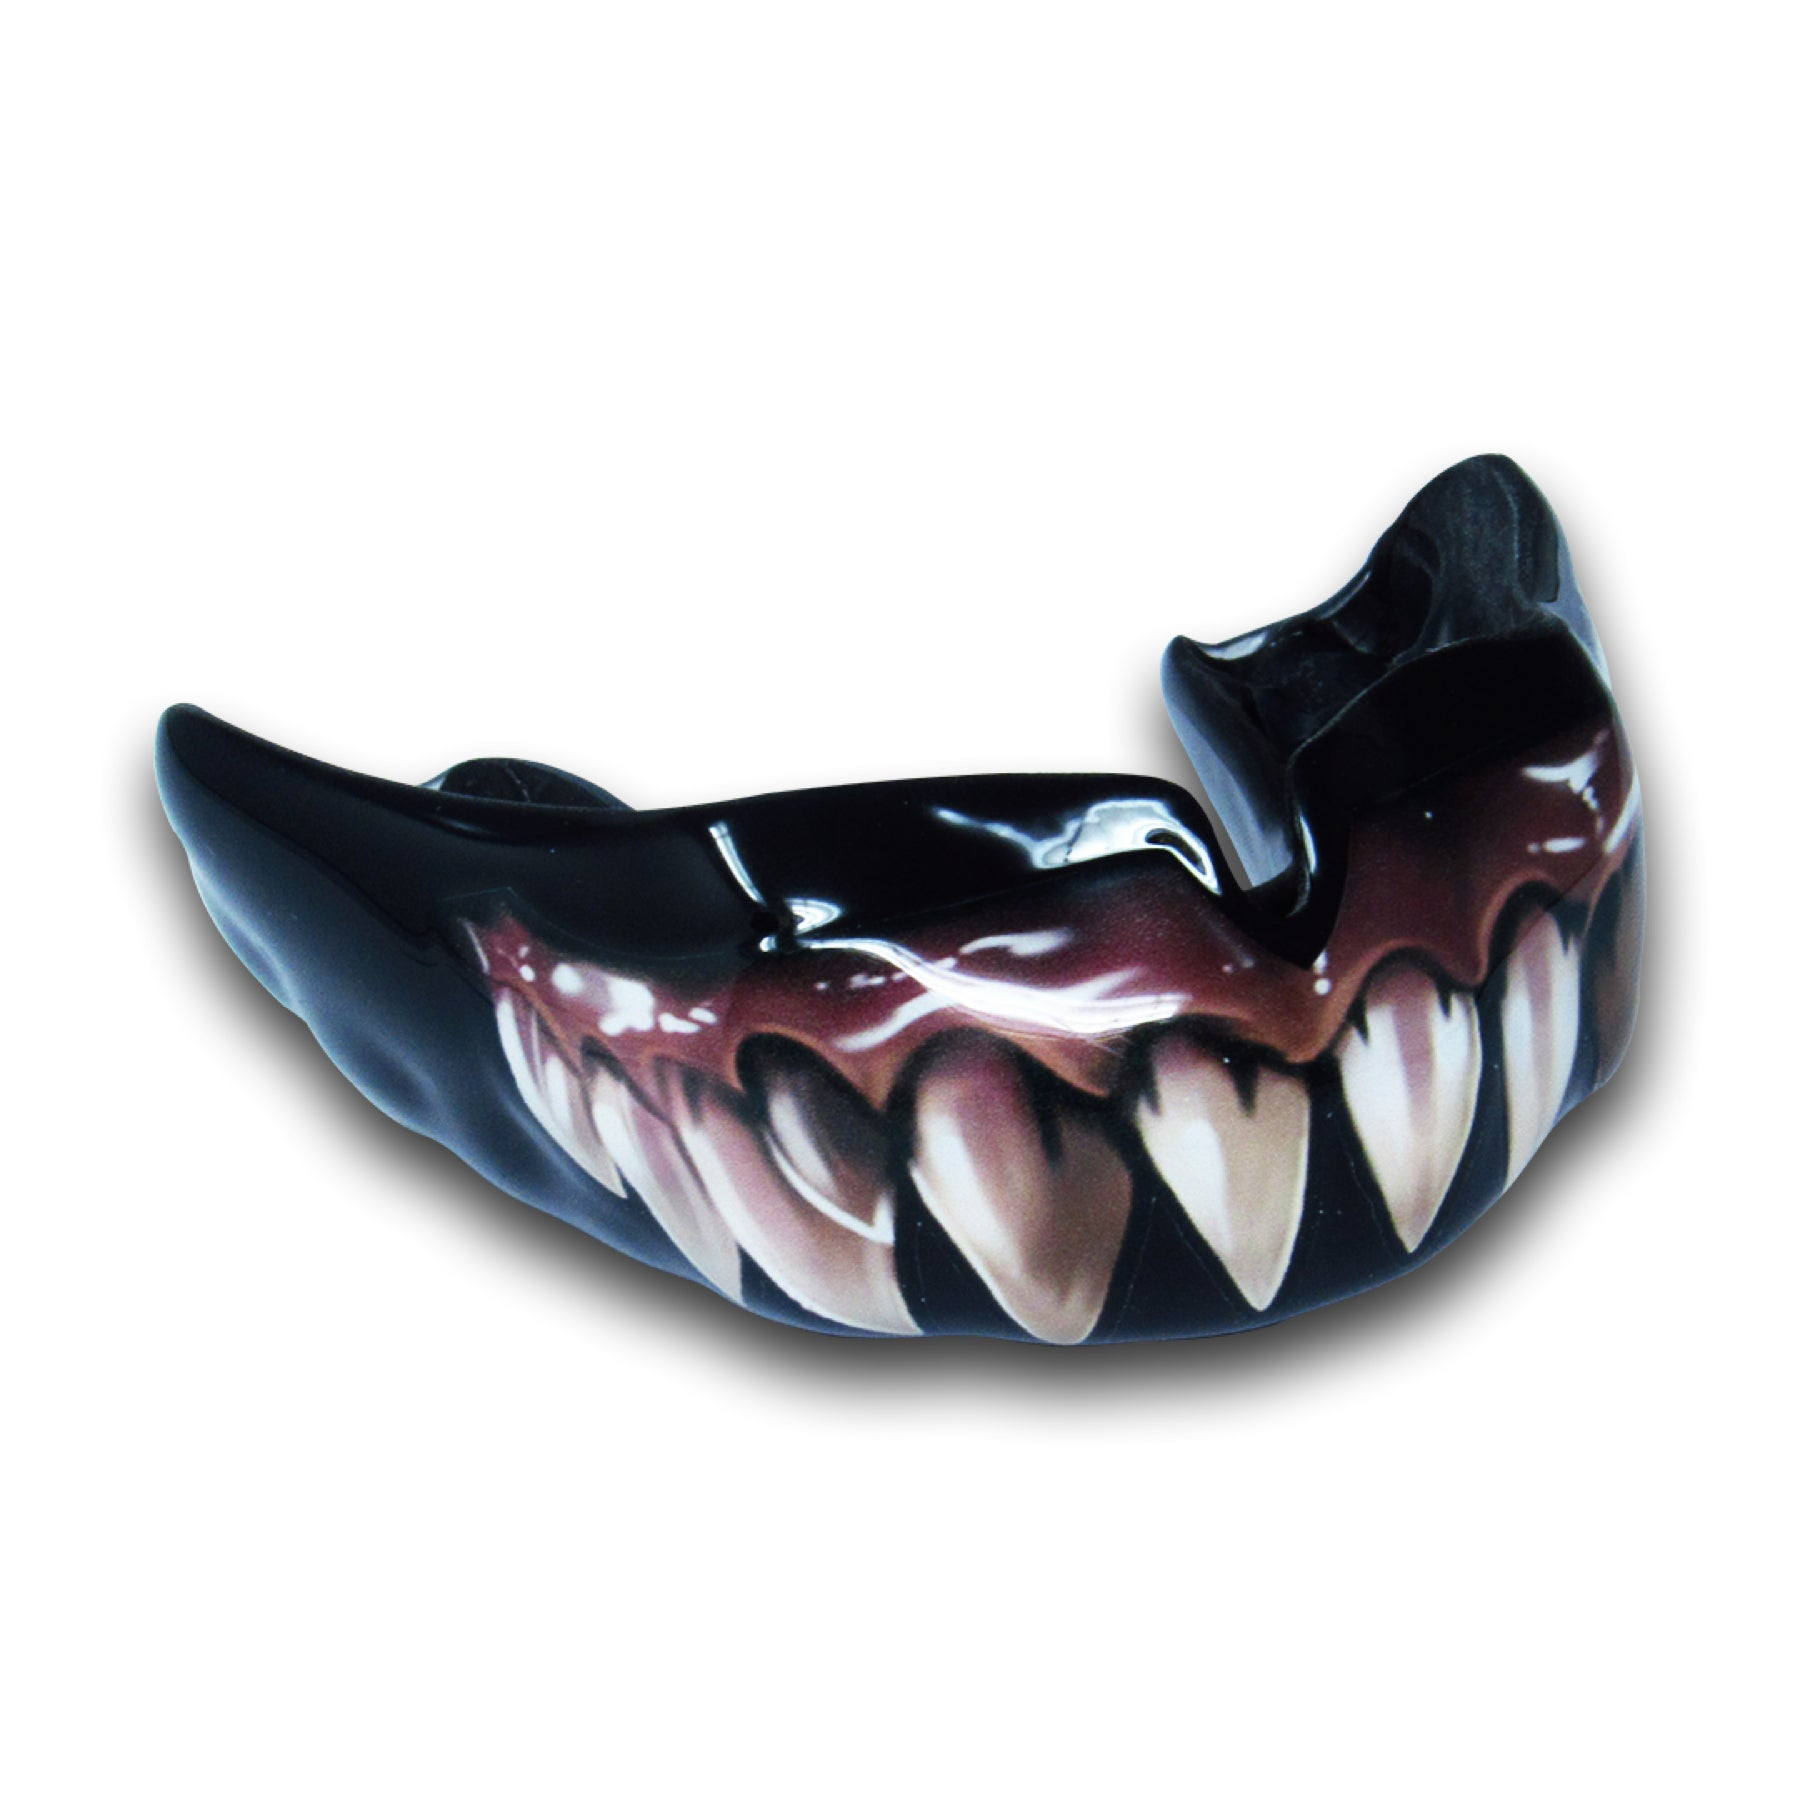 Monster Fangs Mouth Guard